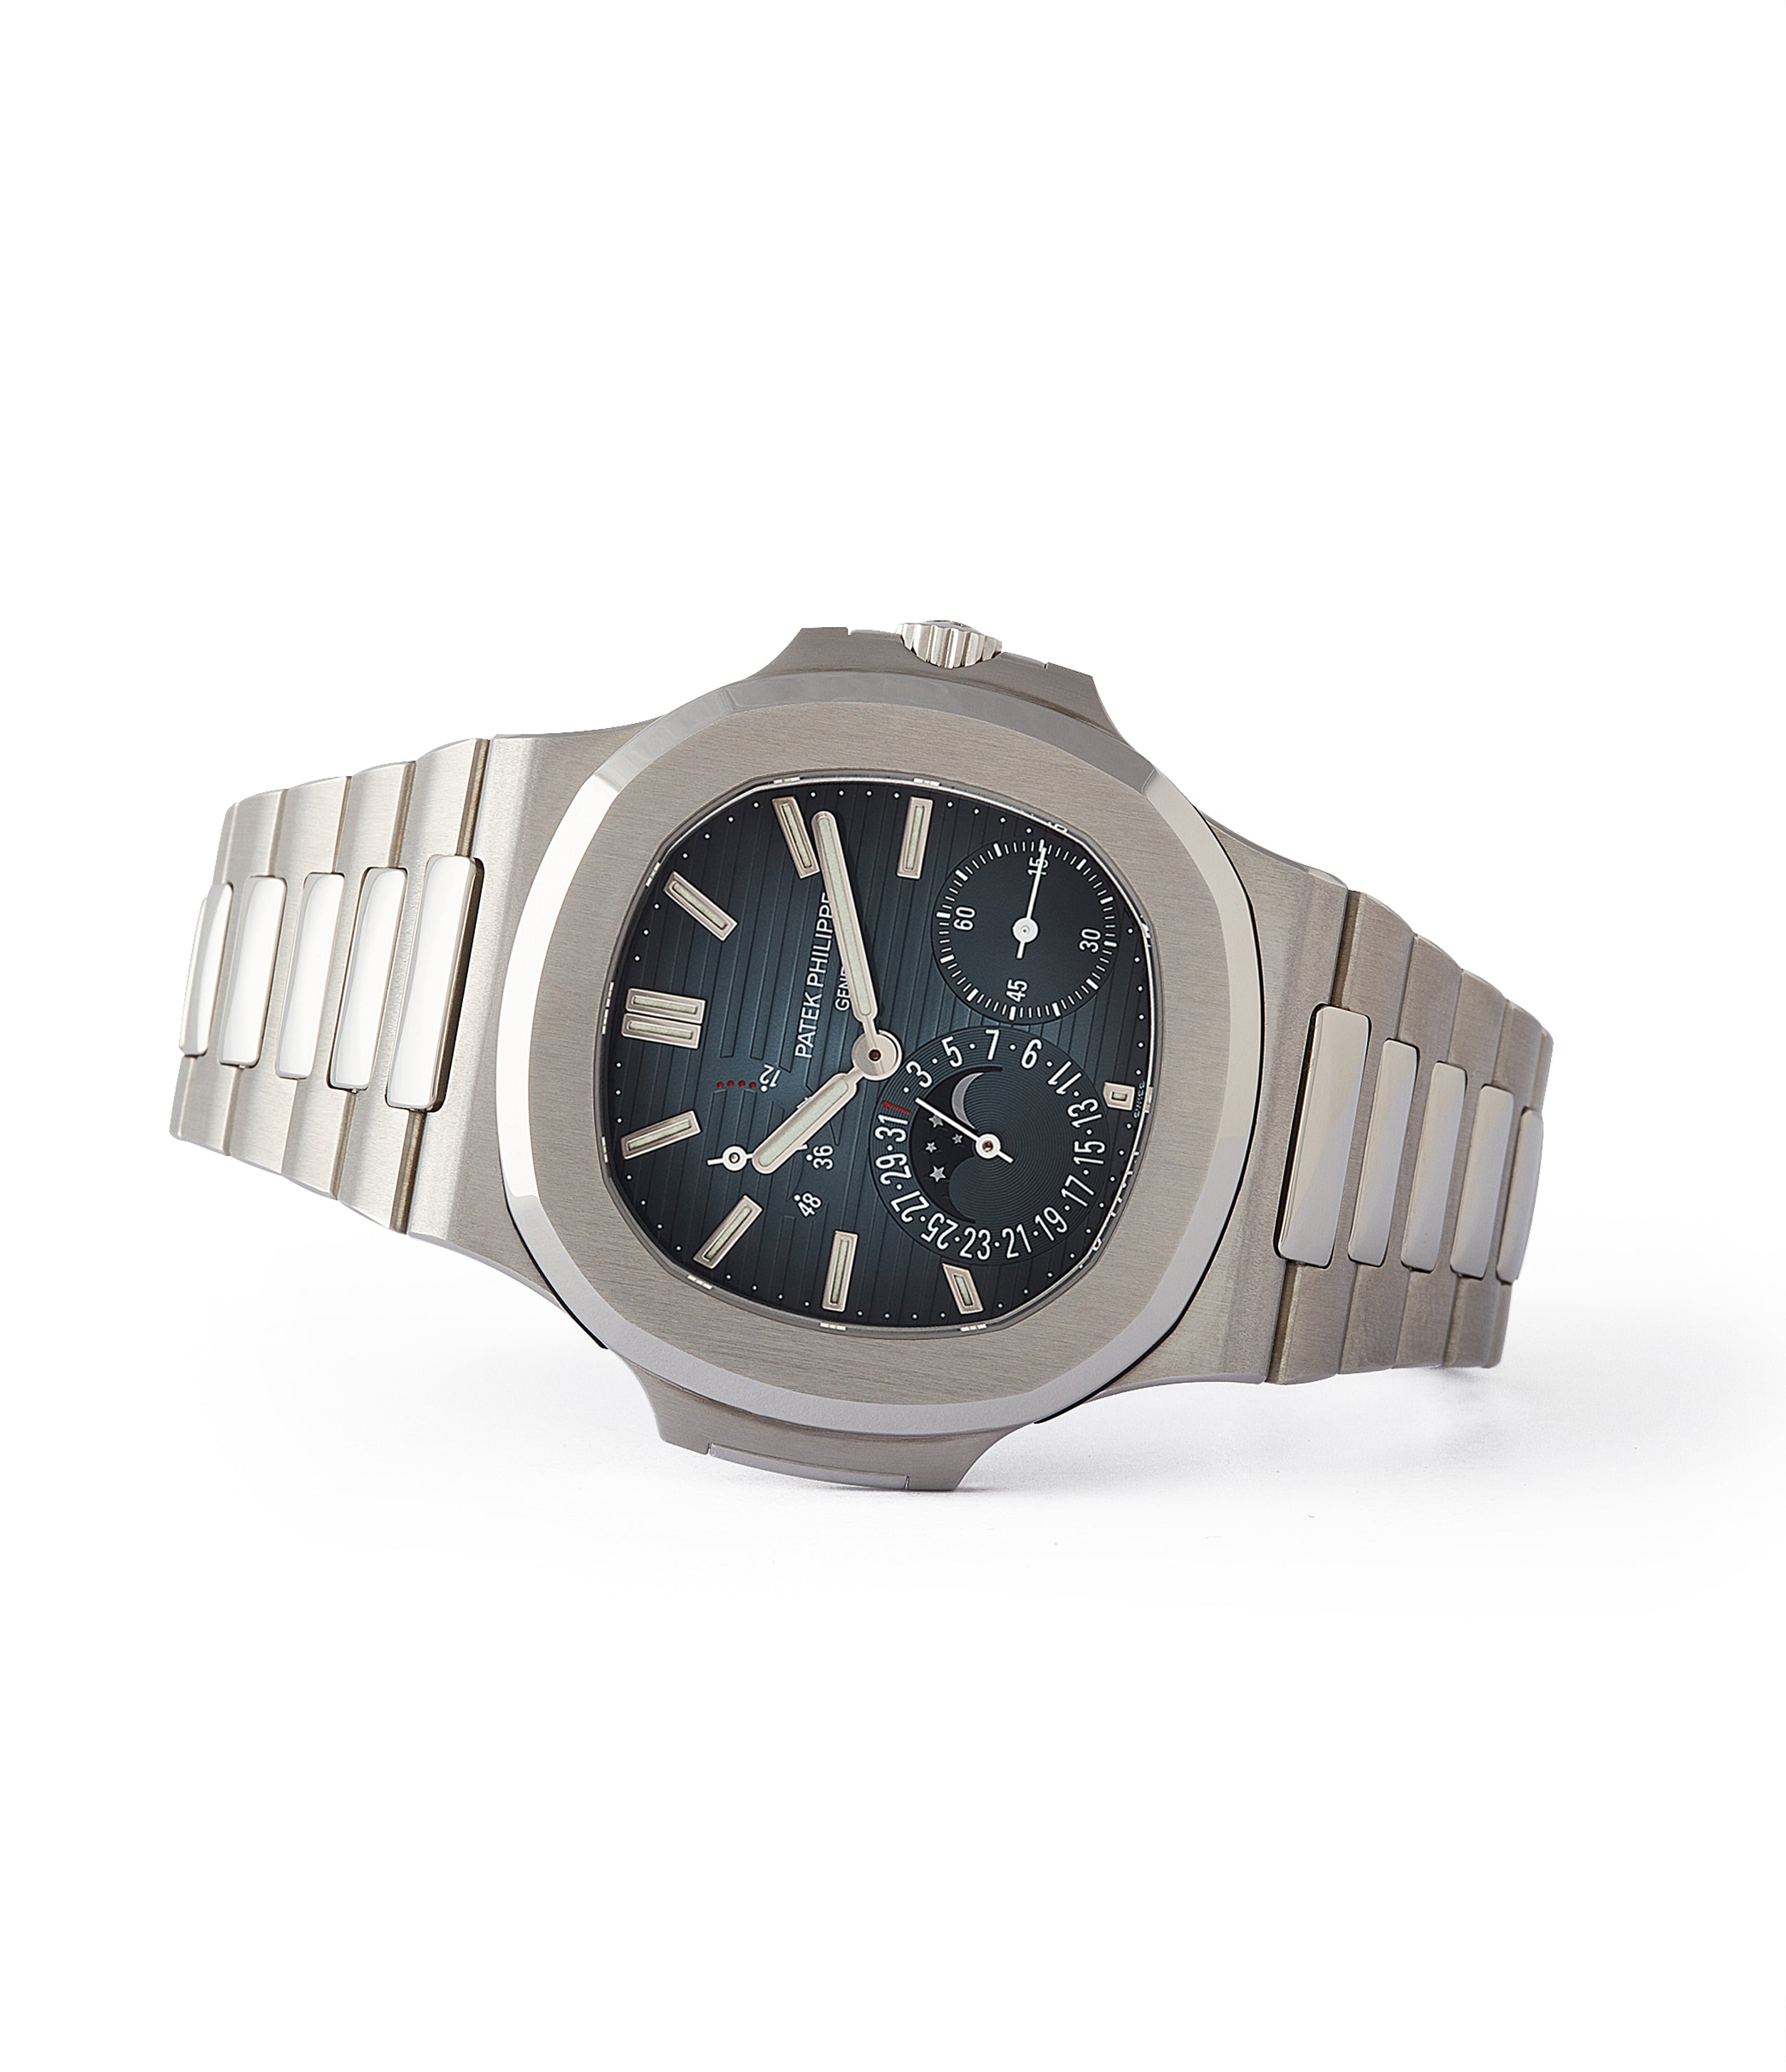 side-shot pre-owned Patek Philippe Nautilus Moon Phase 5712/1A-001 steel pre-owned watch for sale online at A Collected Man London UK specialist of rare watches